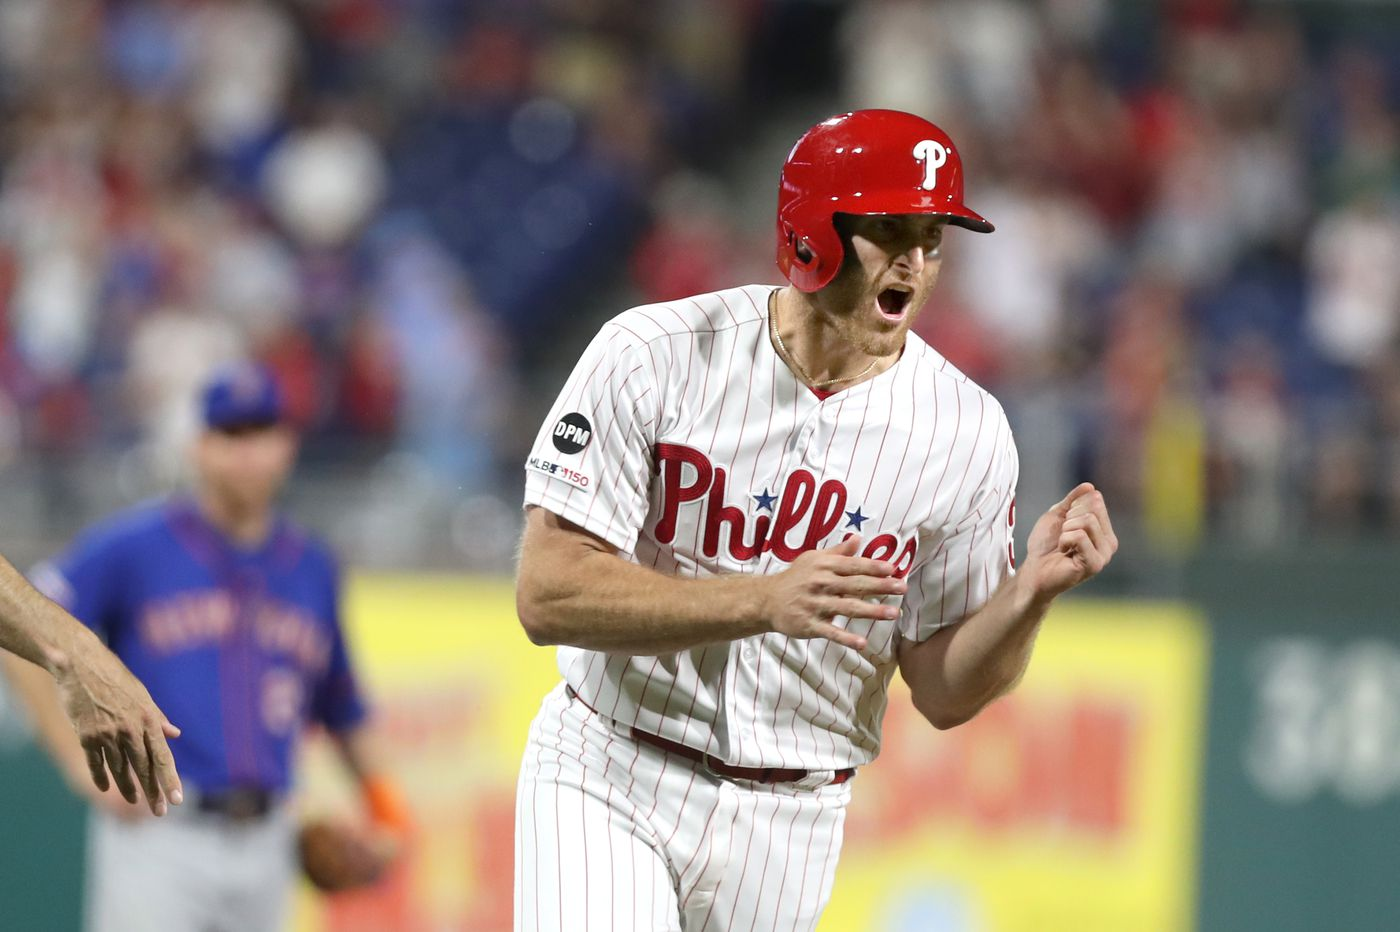 Phillies' bamboo-fueled rebound shows how superstitions can help us | Opinion